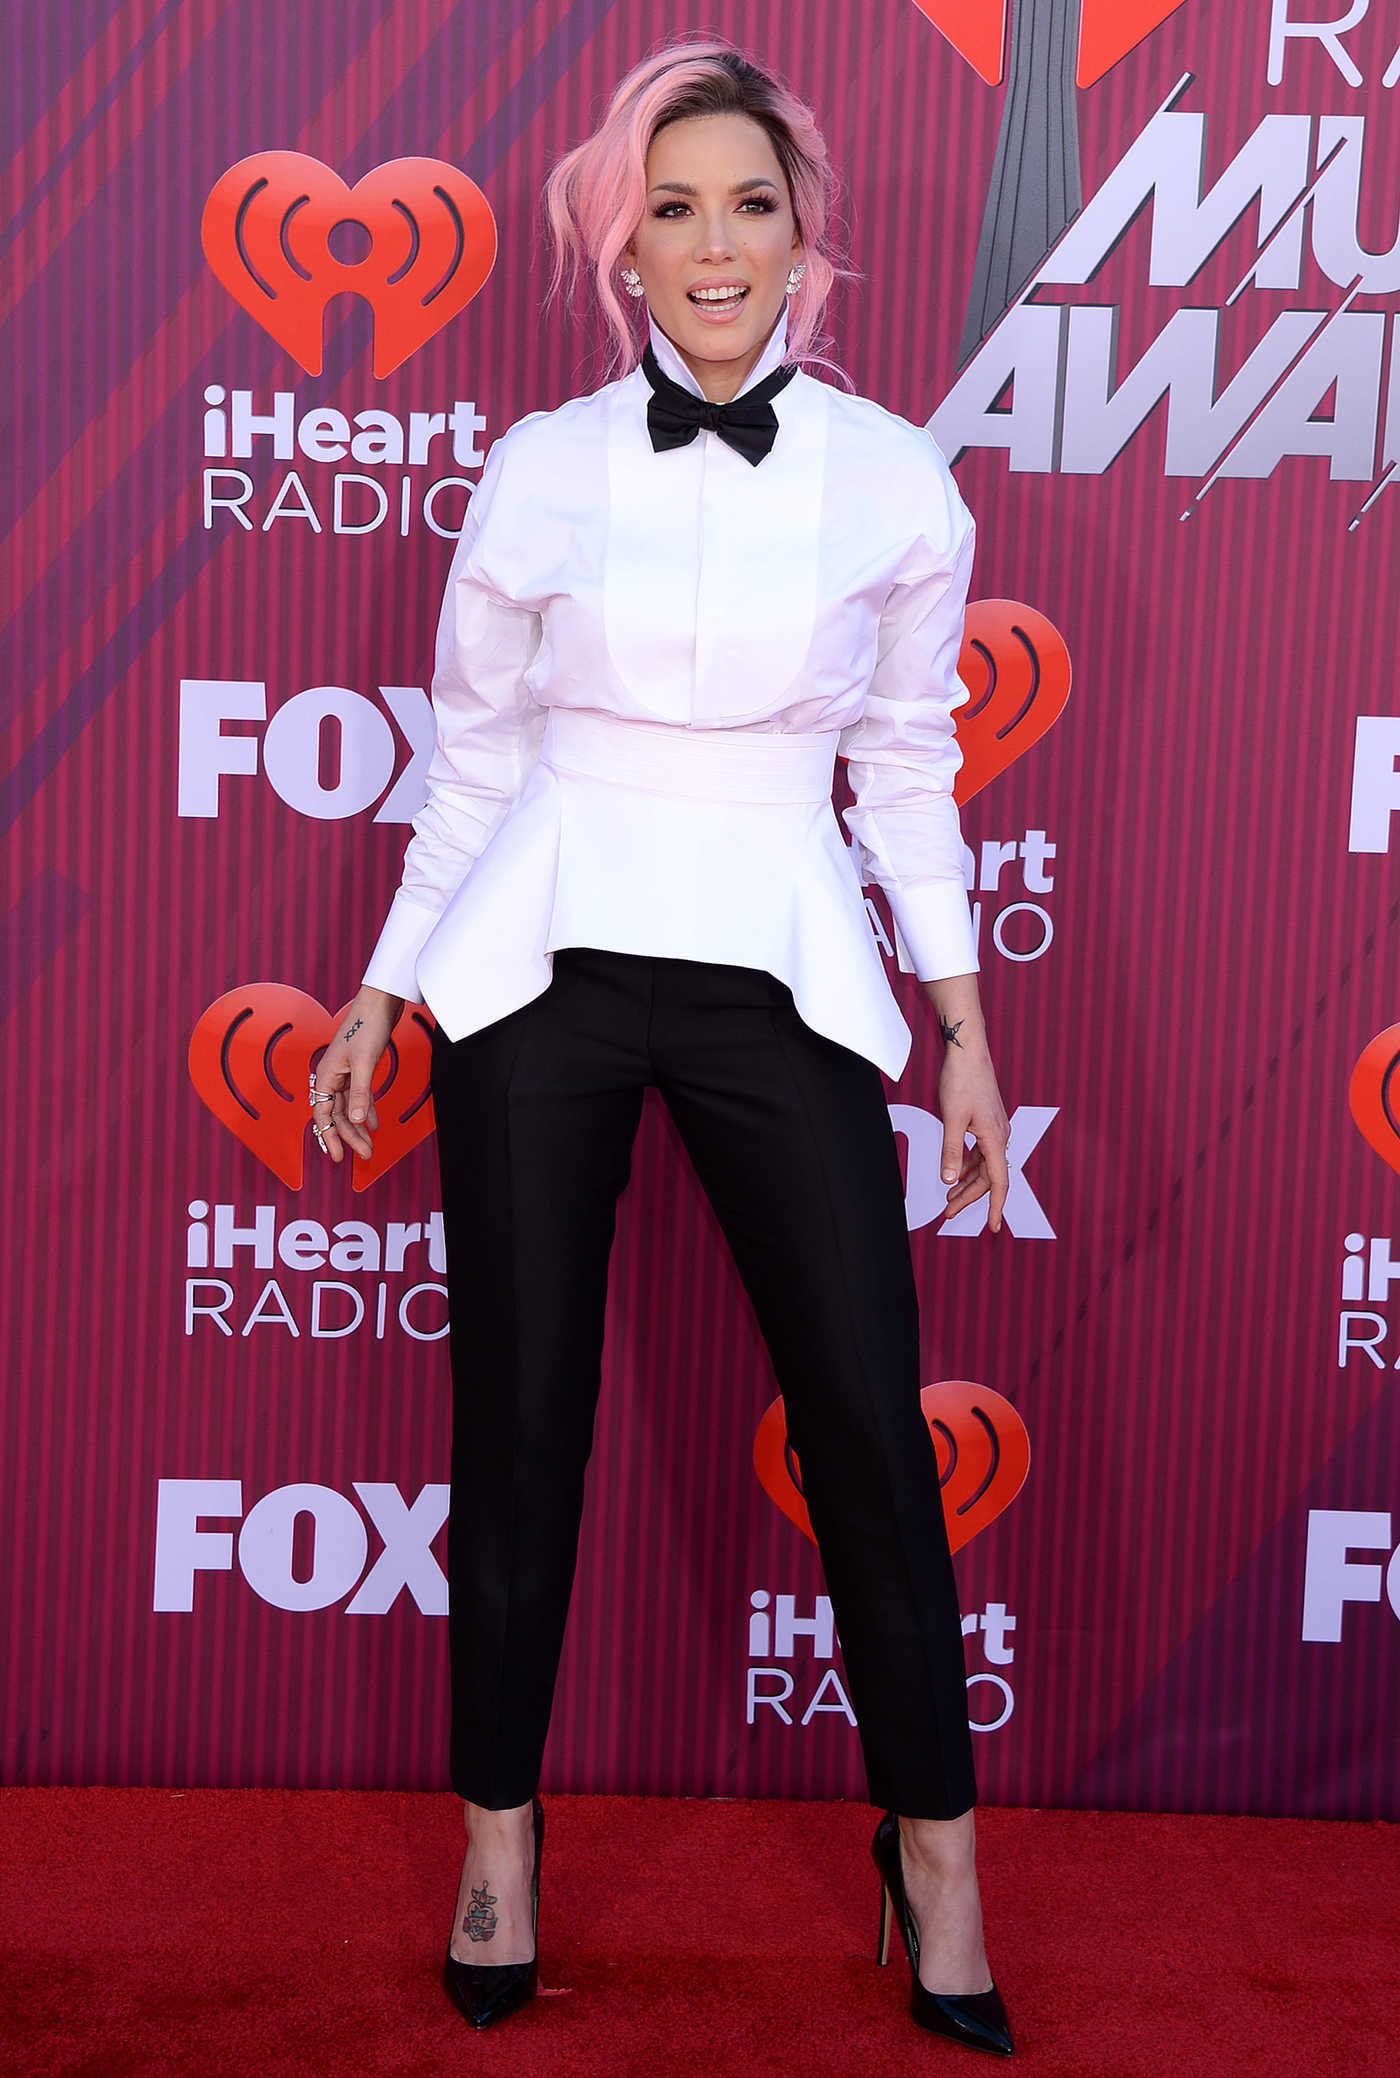 Halsey Attends 2019 iHeartRadio Music Awards at Microsoft Theater in LA 03/14/2019